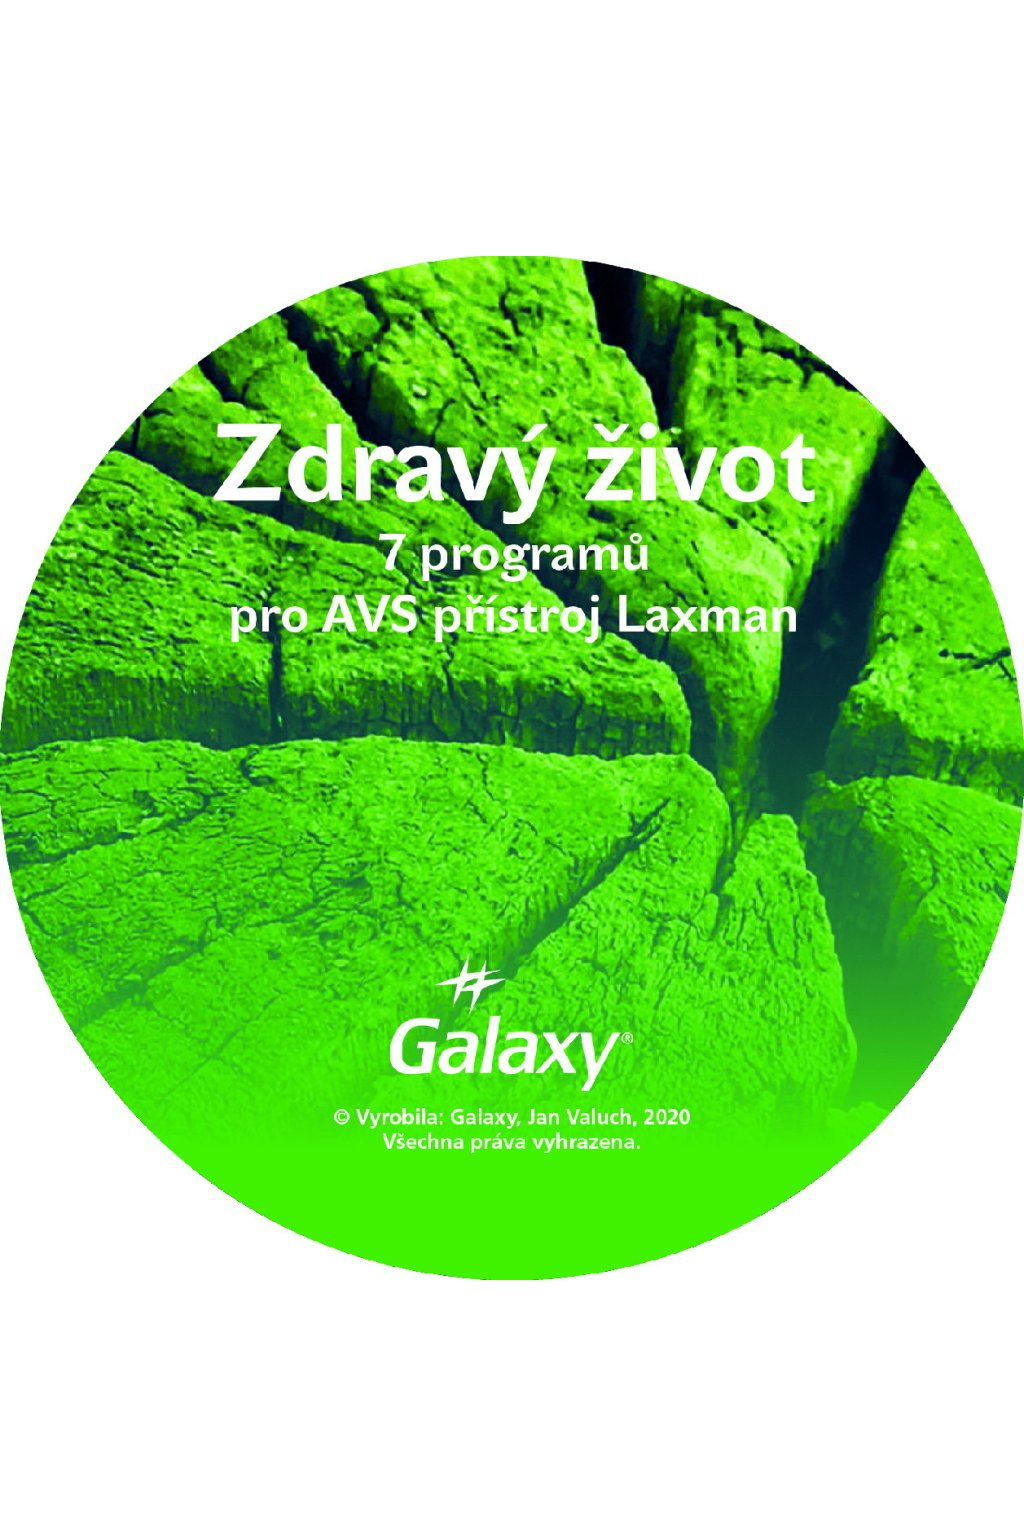 CD Zdravy zivot final